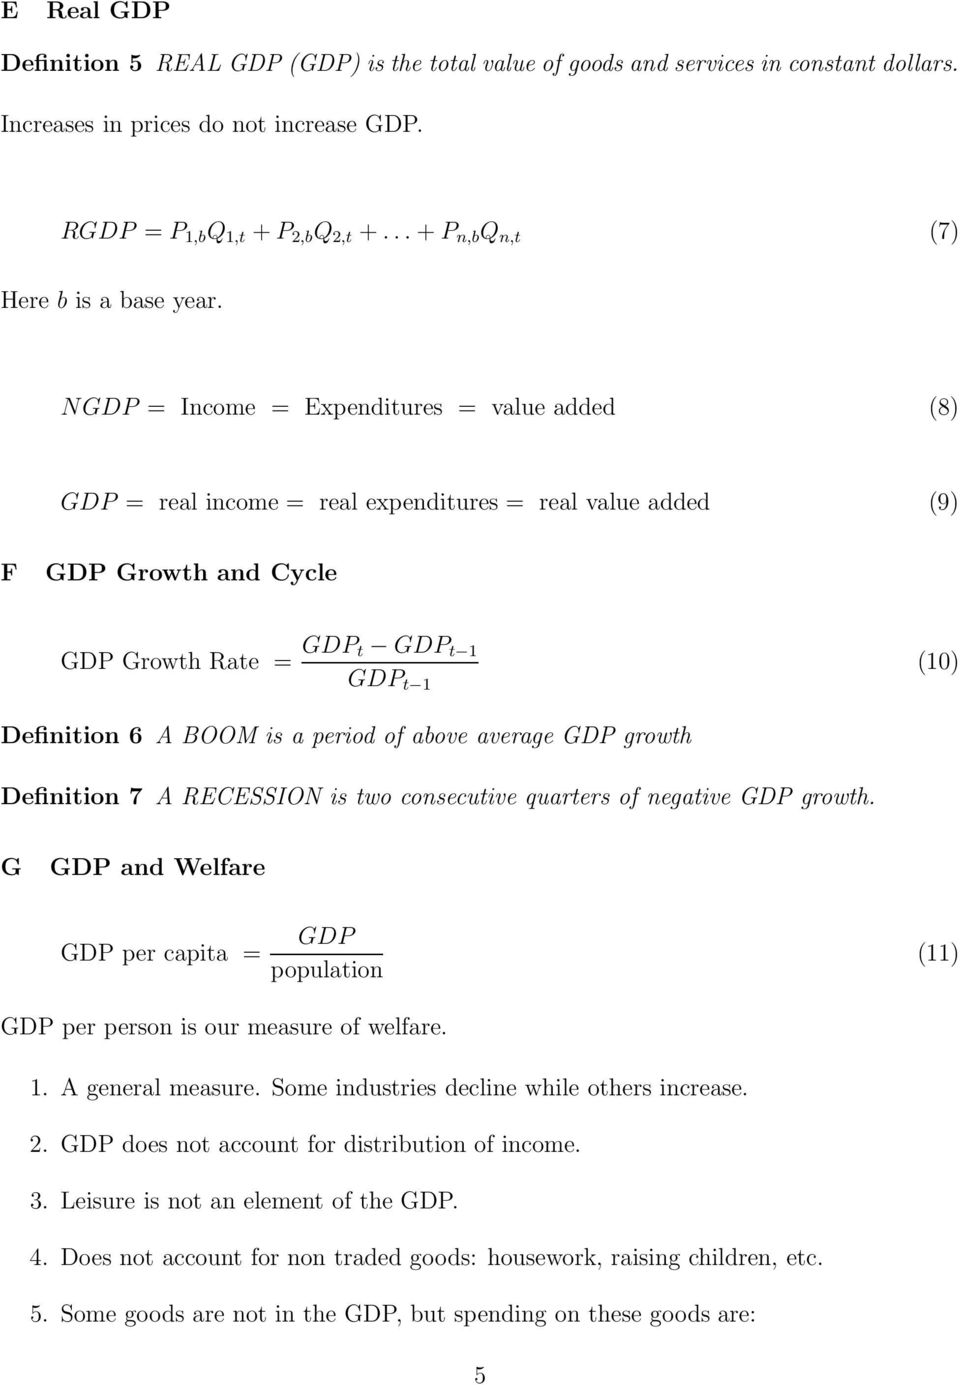 N GDP = Income = Expenditures = value added (8) GDP = real income = real expenditures = real value added (9) F GDP Growth and Cycle GDP Growth Rate = GDP t GDP t 1 GDP t 1 (10) Definition 6 A BOOM is